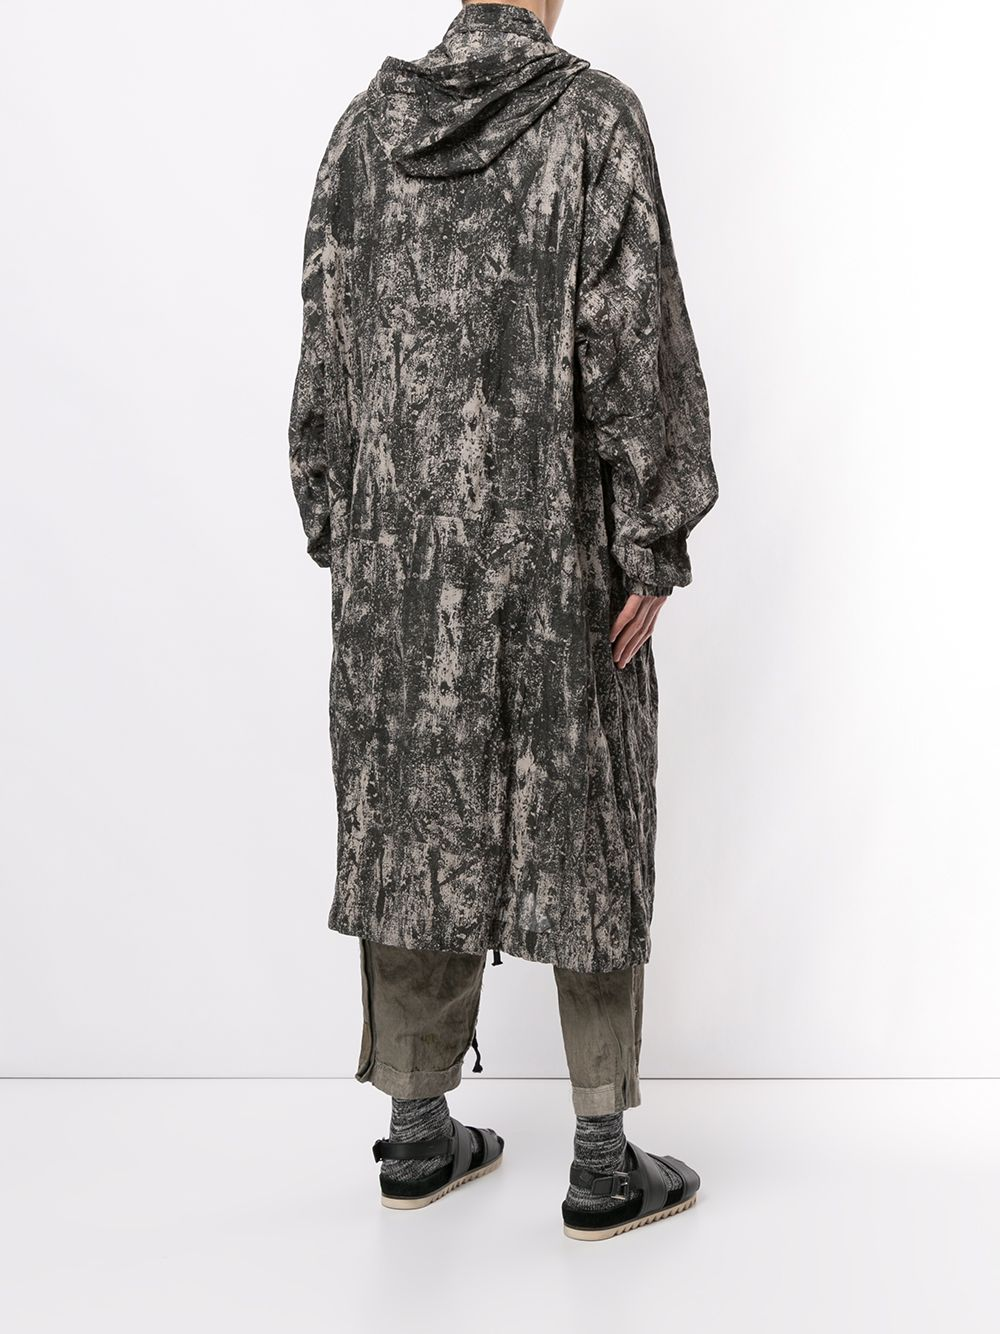 ZIGGY CHEN BRUSH STROKE PRINTED PARKA